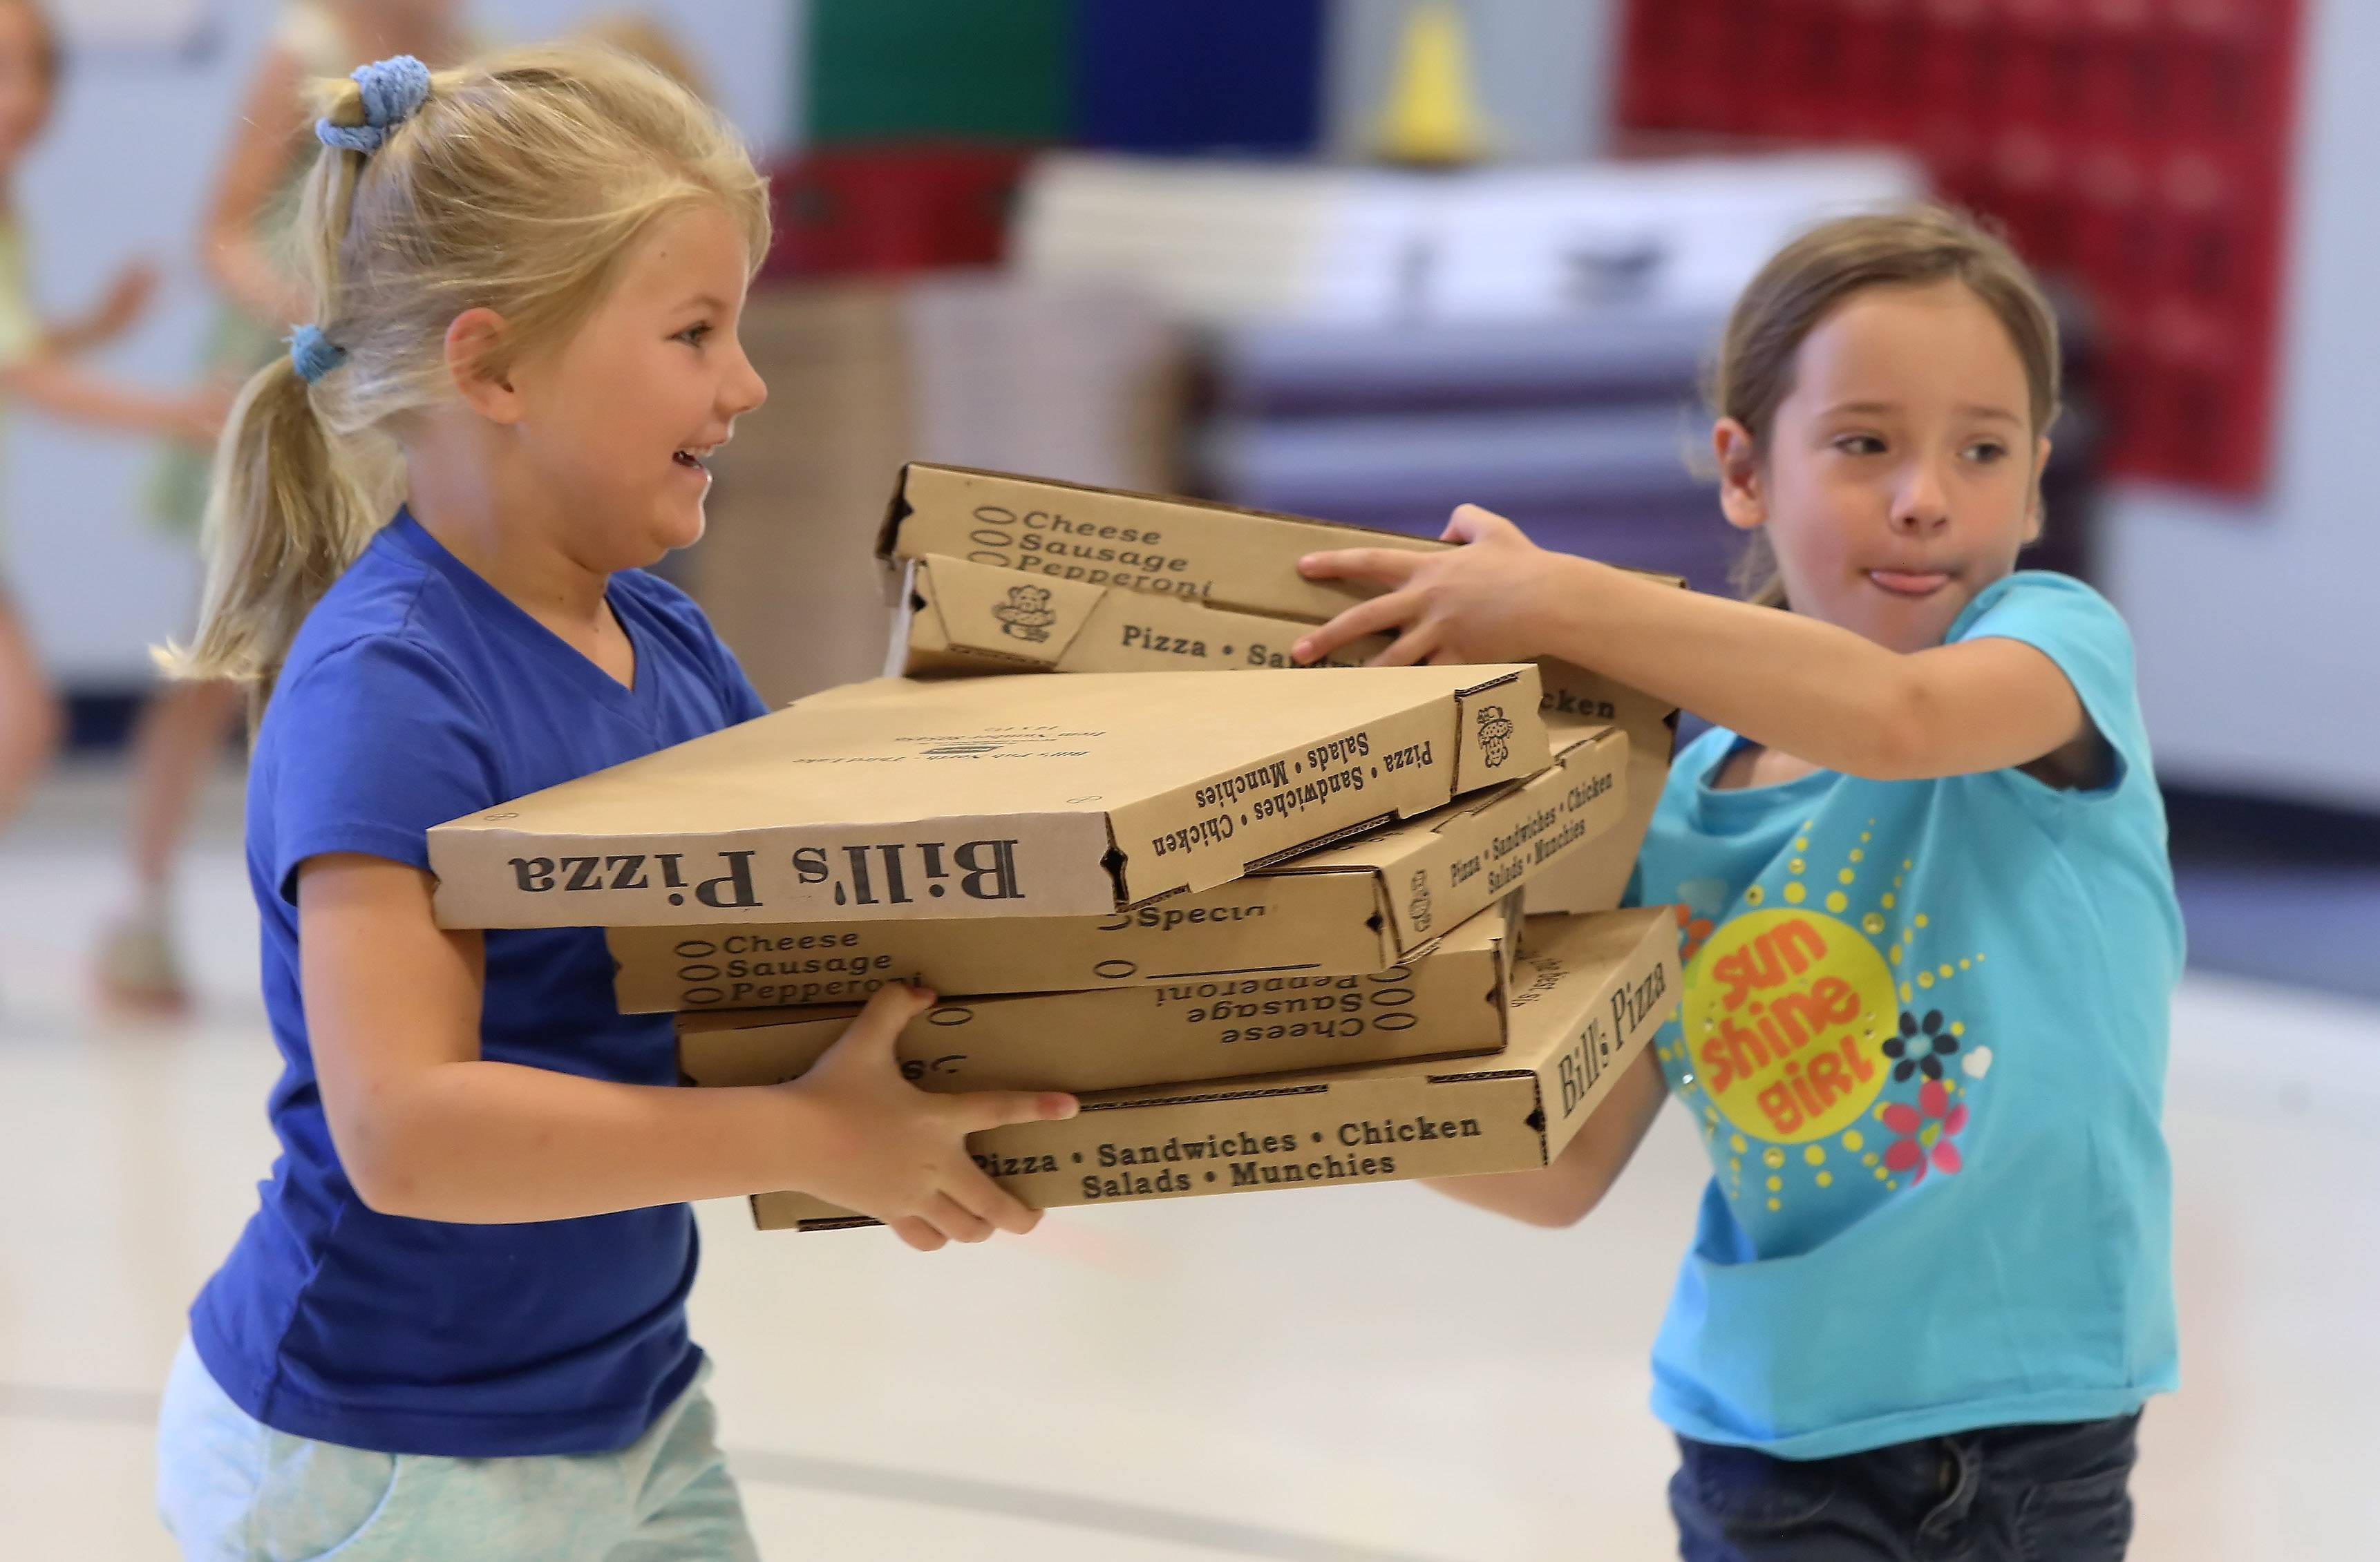 Kindergartners Jessica Sadowska, left, and Annie Lock compete in the pizza box relays Tuesday during Field Day at Adler Park School in Libertyville. More than 50 parent volunteers helped out with games, including potato hockey relays, pizza box relays and the three-legged race.